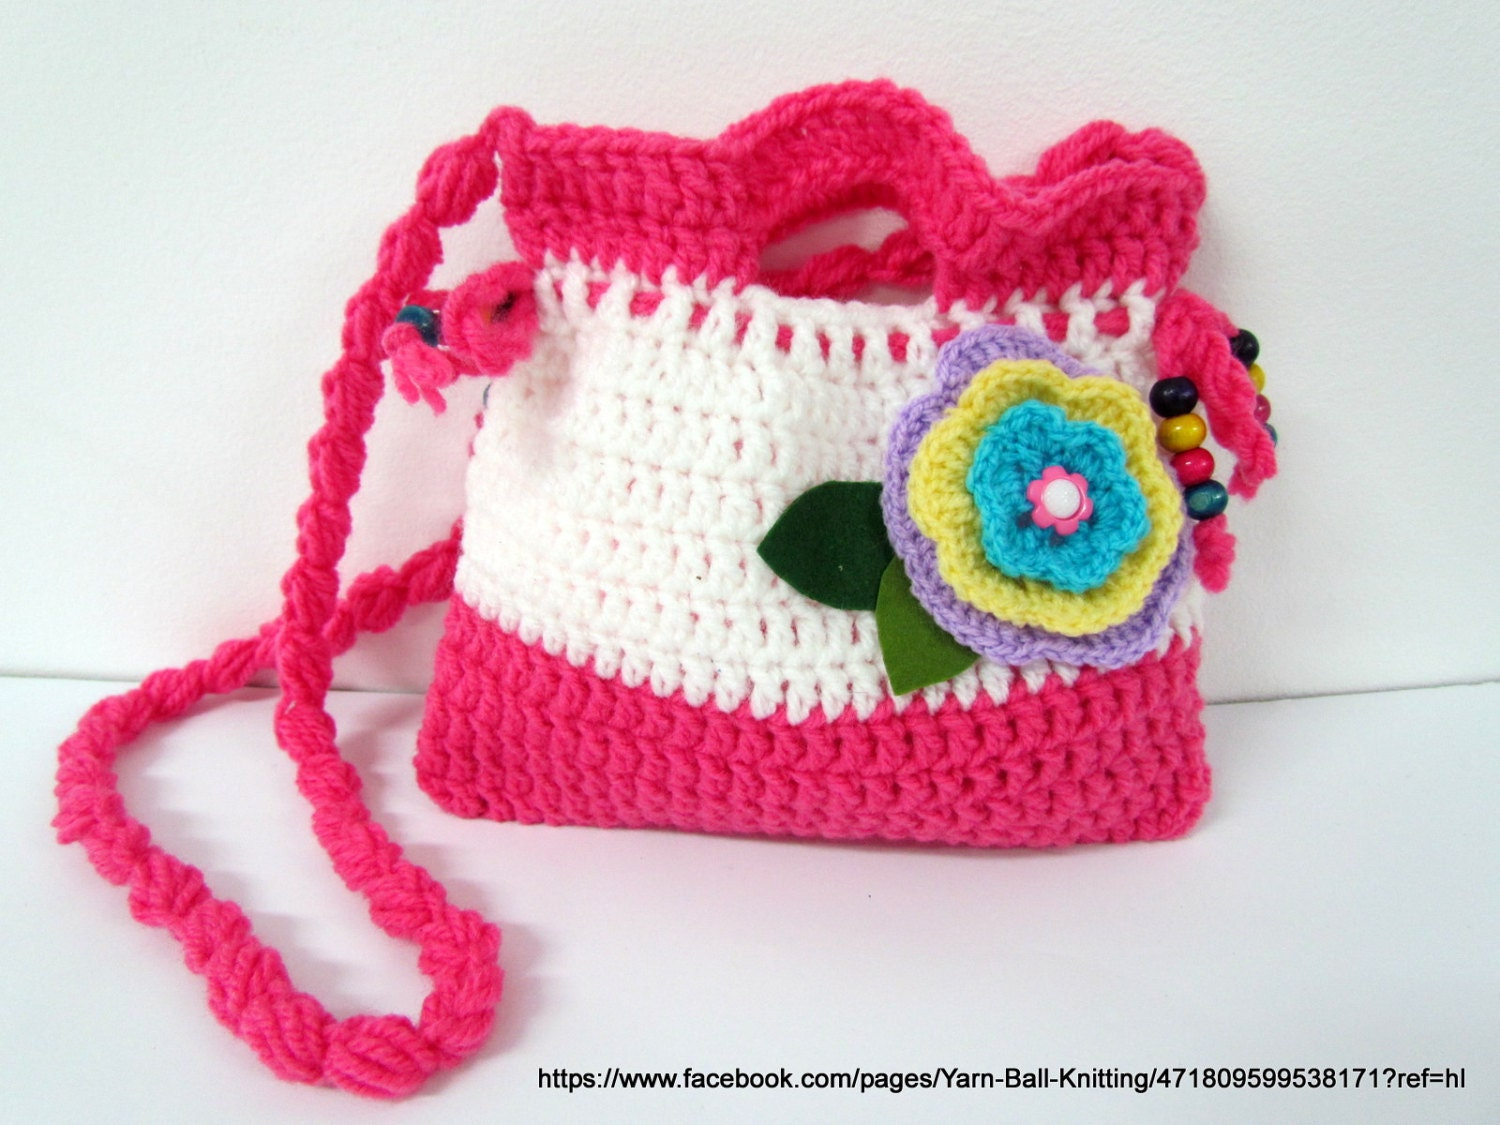 Crochet Purse For Child : ... Crochet Purse. Crochet Clutch. Childrens Crochet Purse.Crochet bag